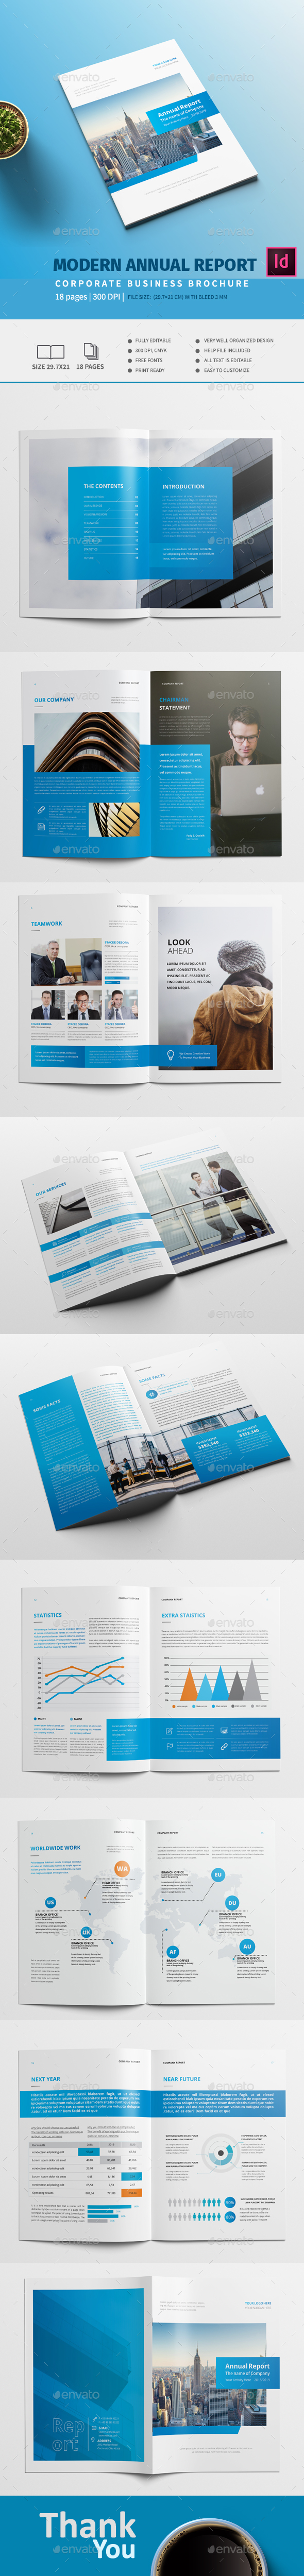 Modern Annual Report A4 - Corporate Brochures